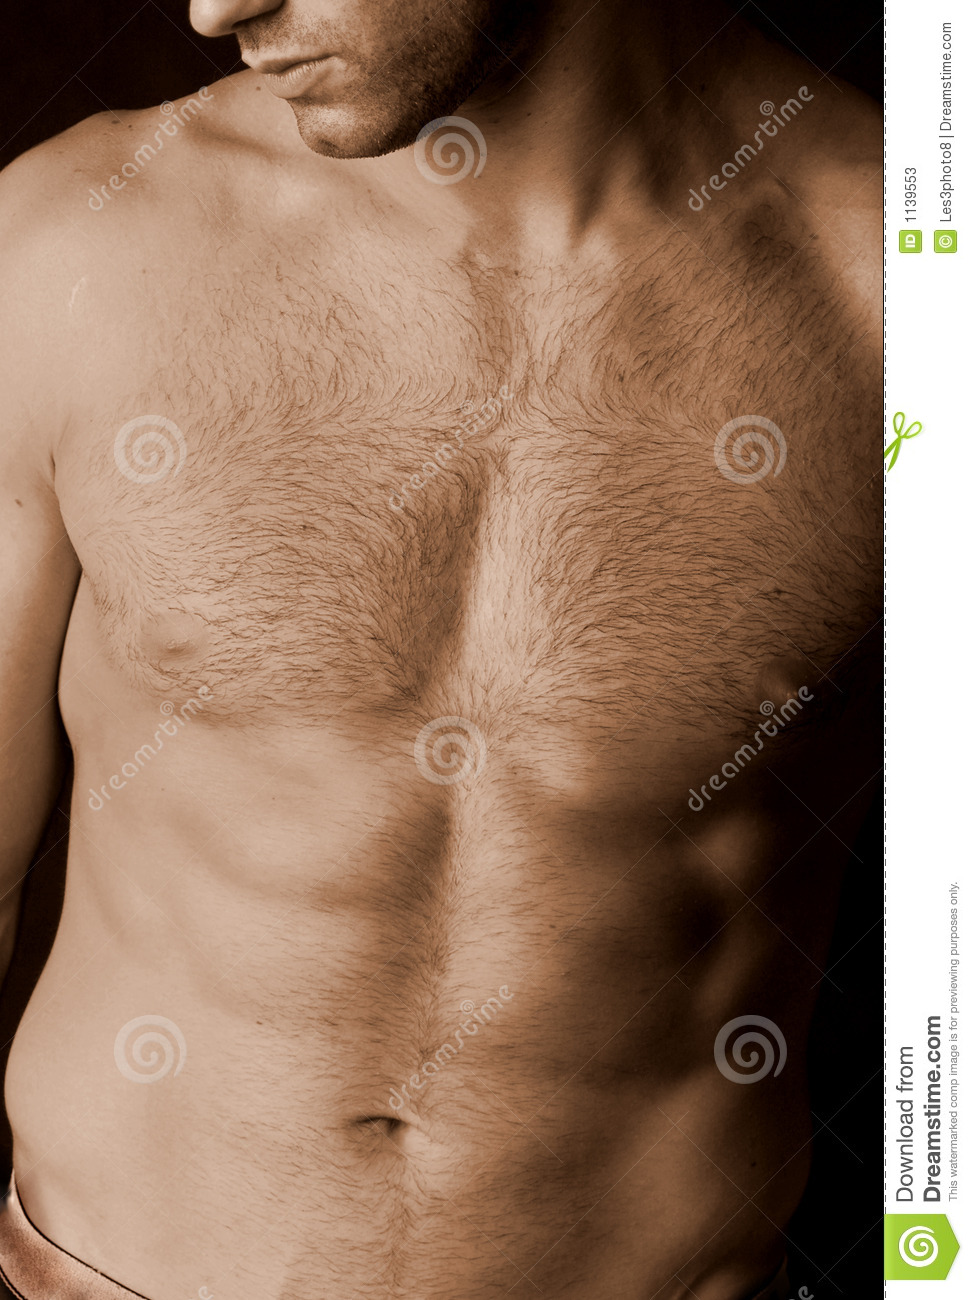 Free pictures of hairy chest men